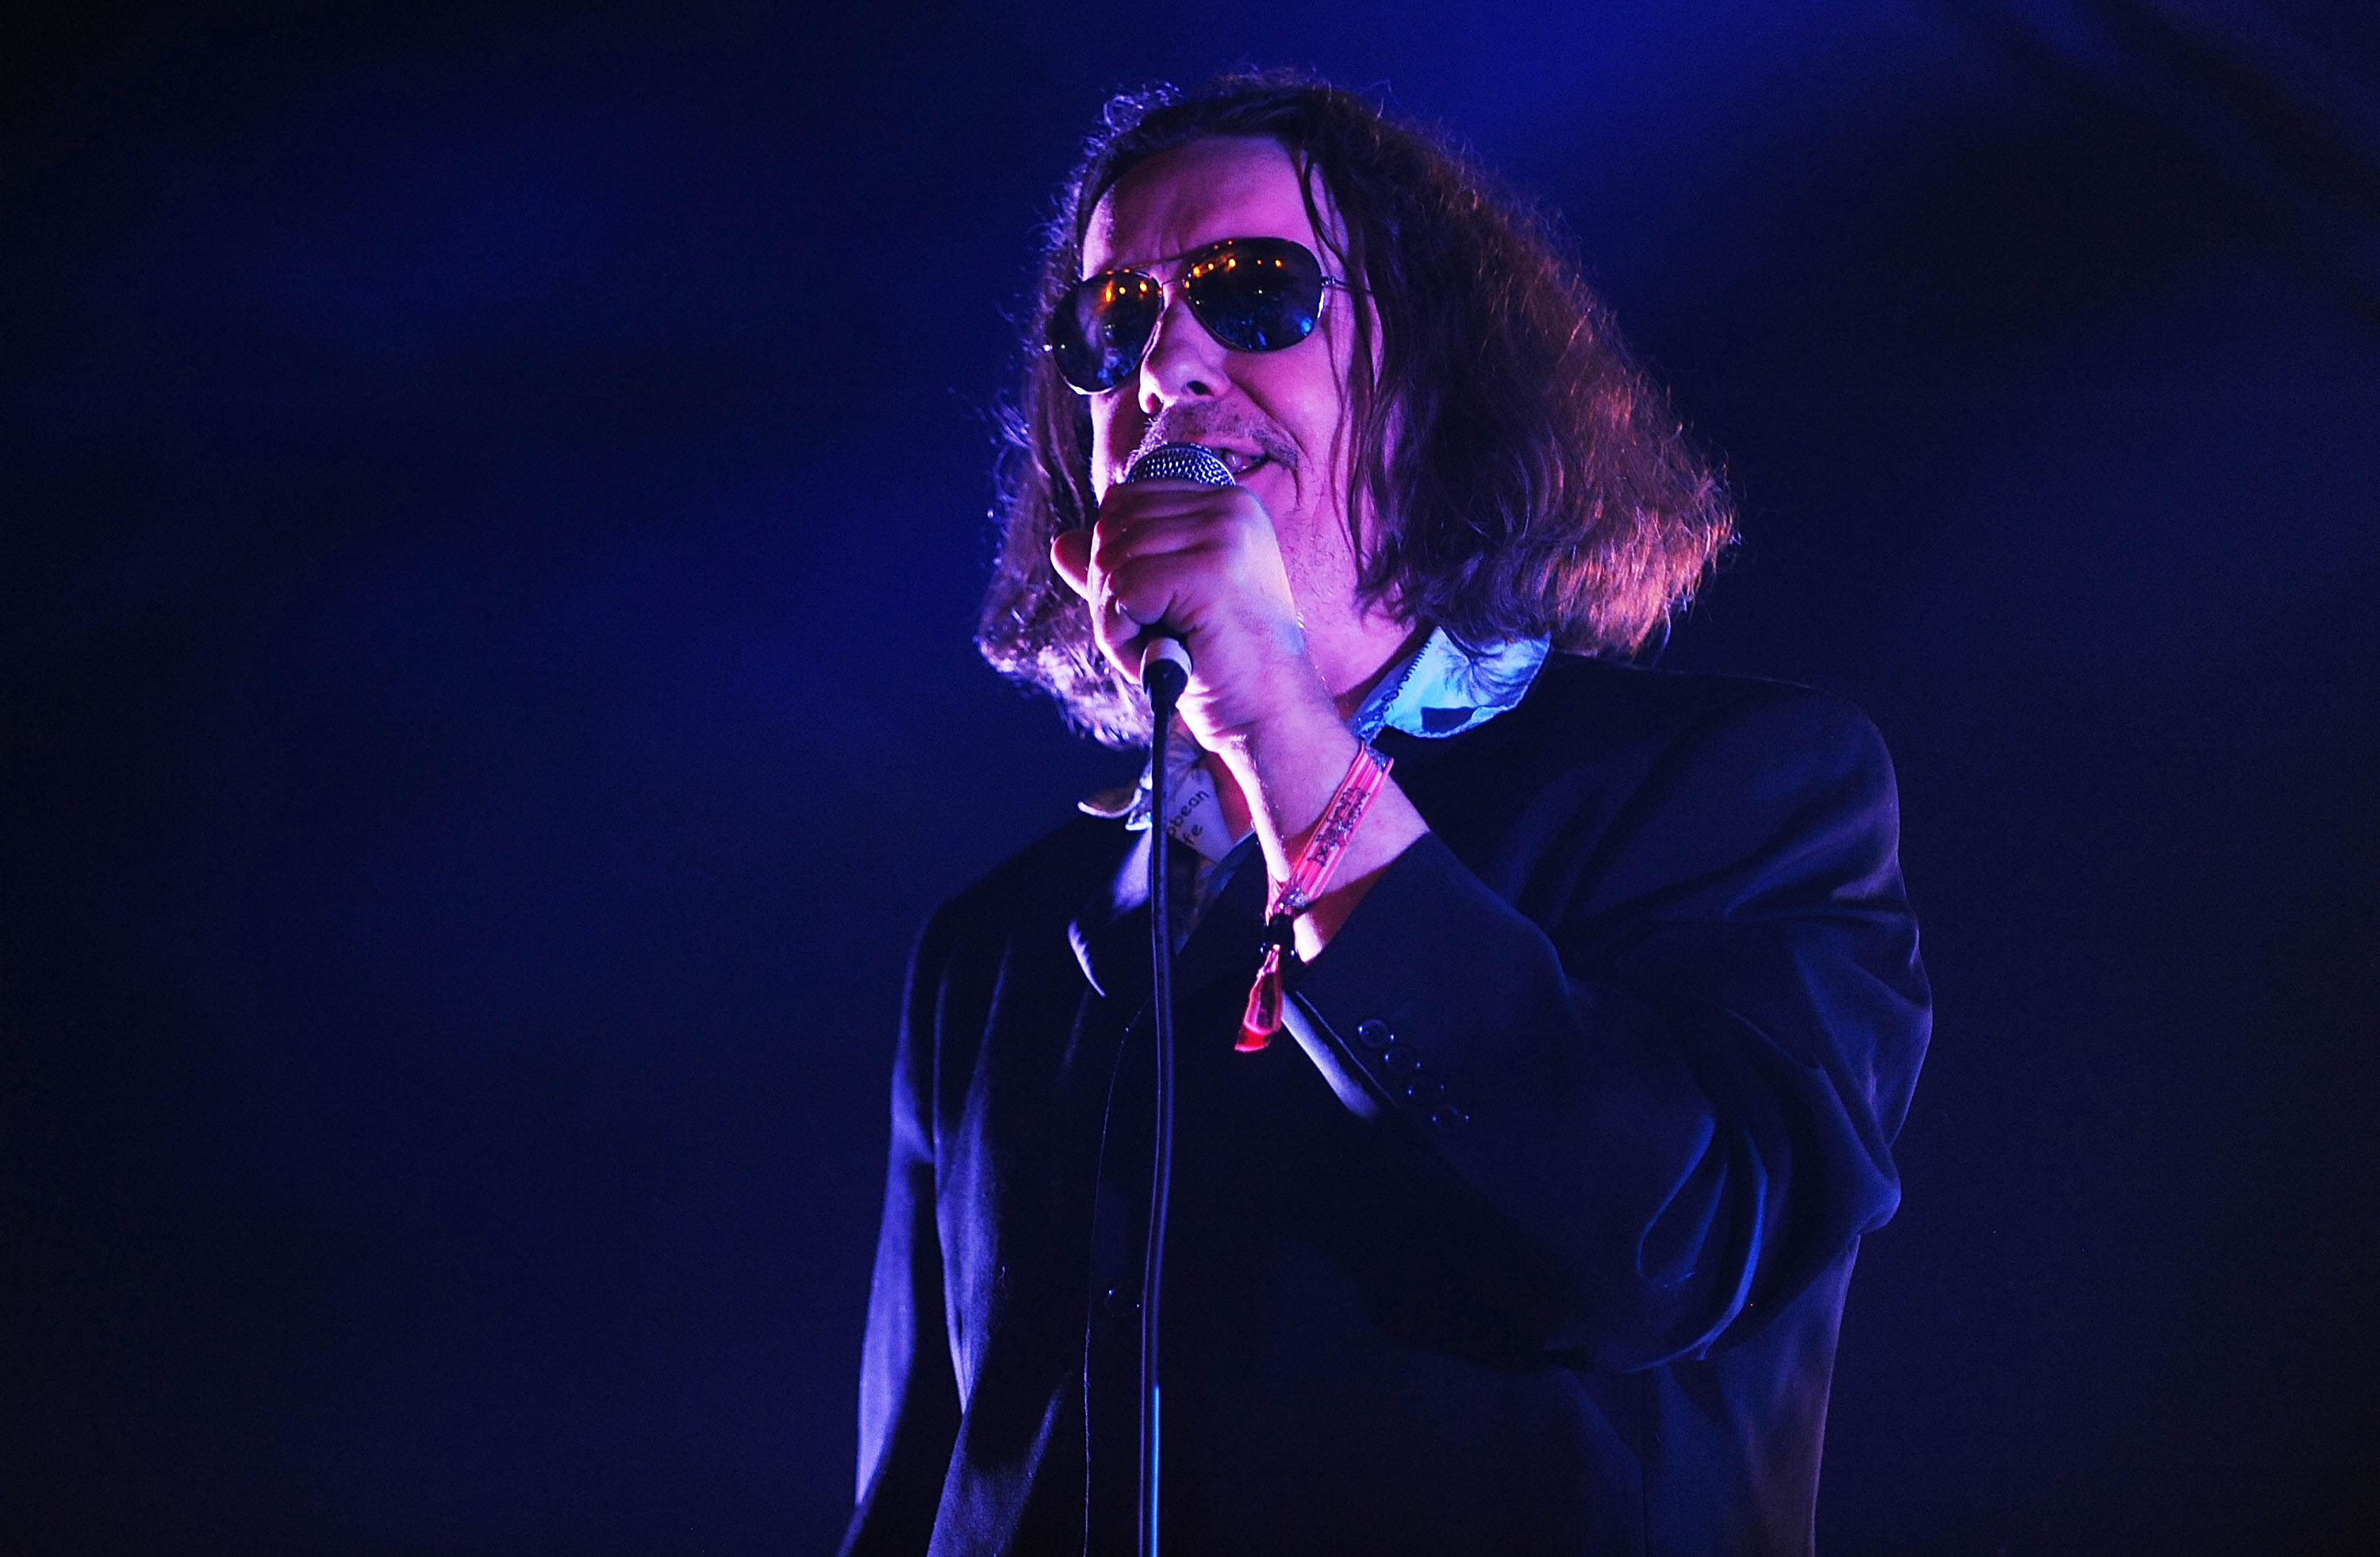 Jake Black perfoming with The Alabama 3 in Belladrum in 2013.